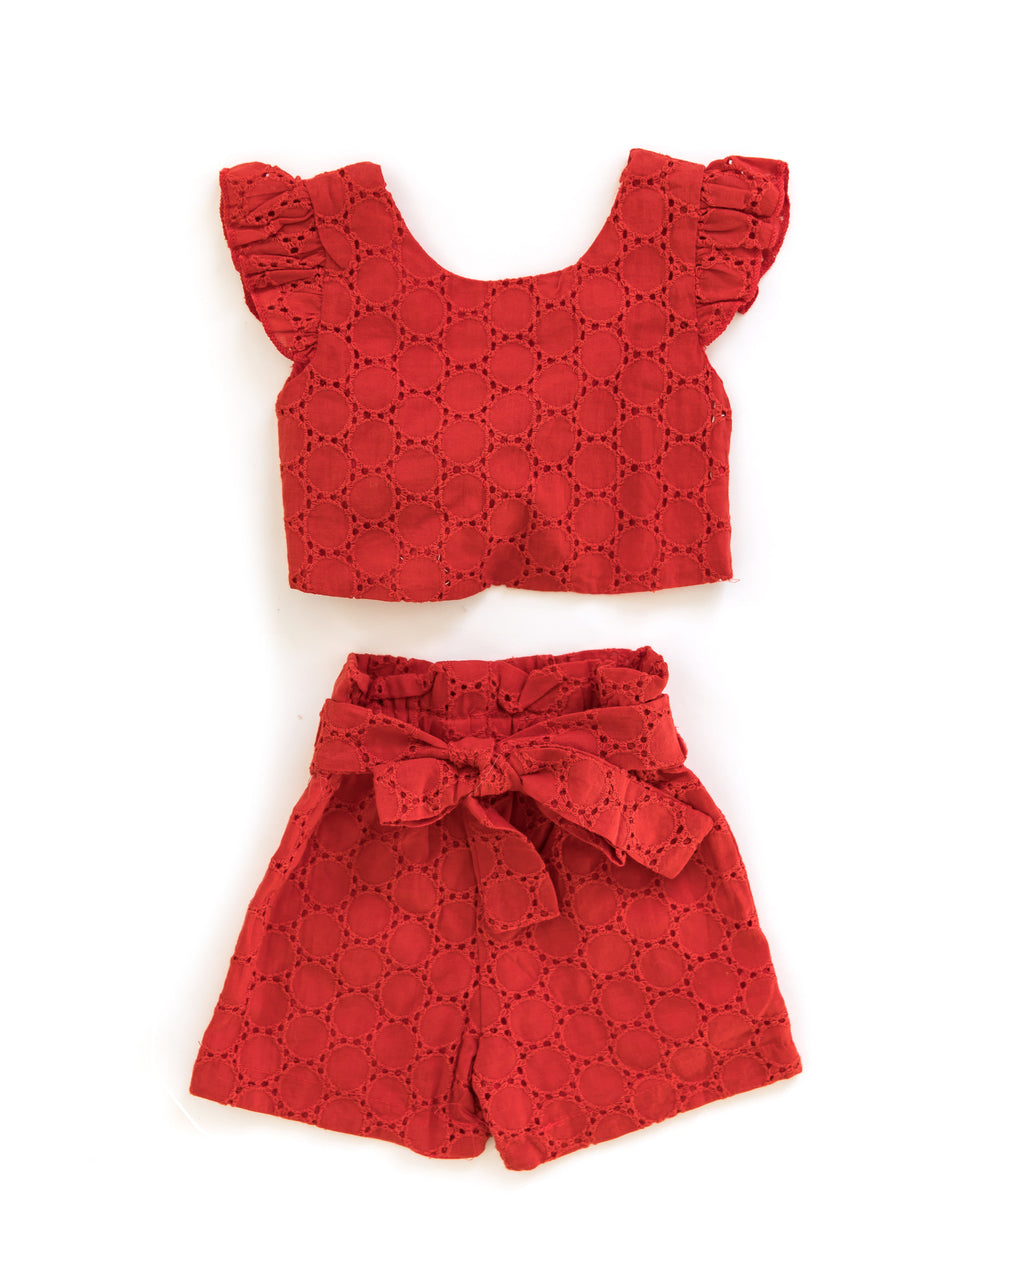 Ariana Outfit in Red - Reverie Threads